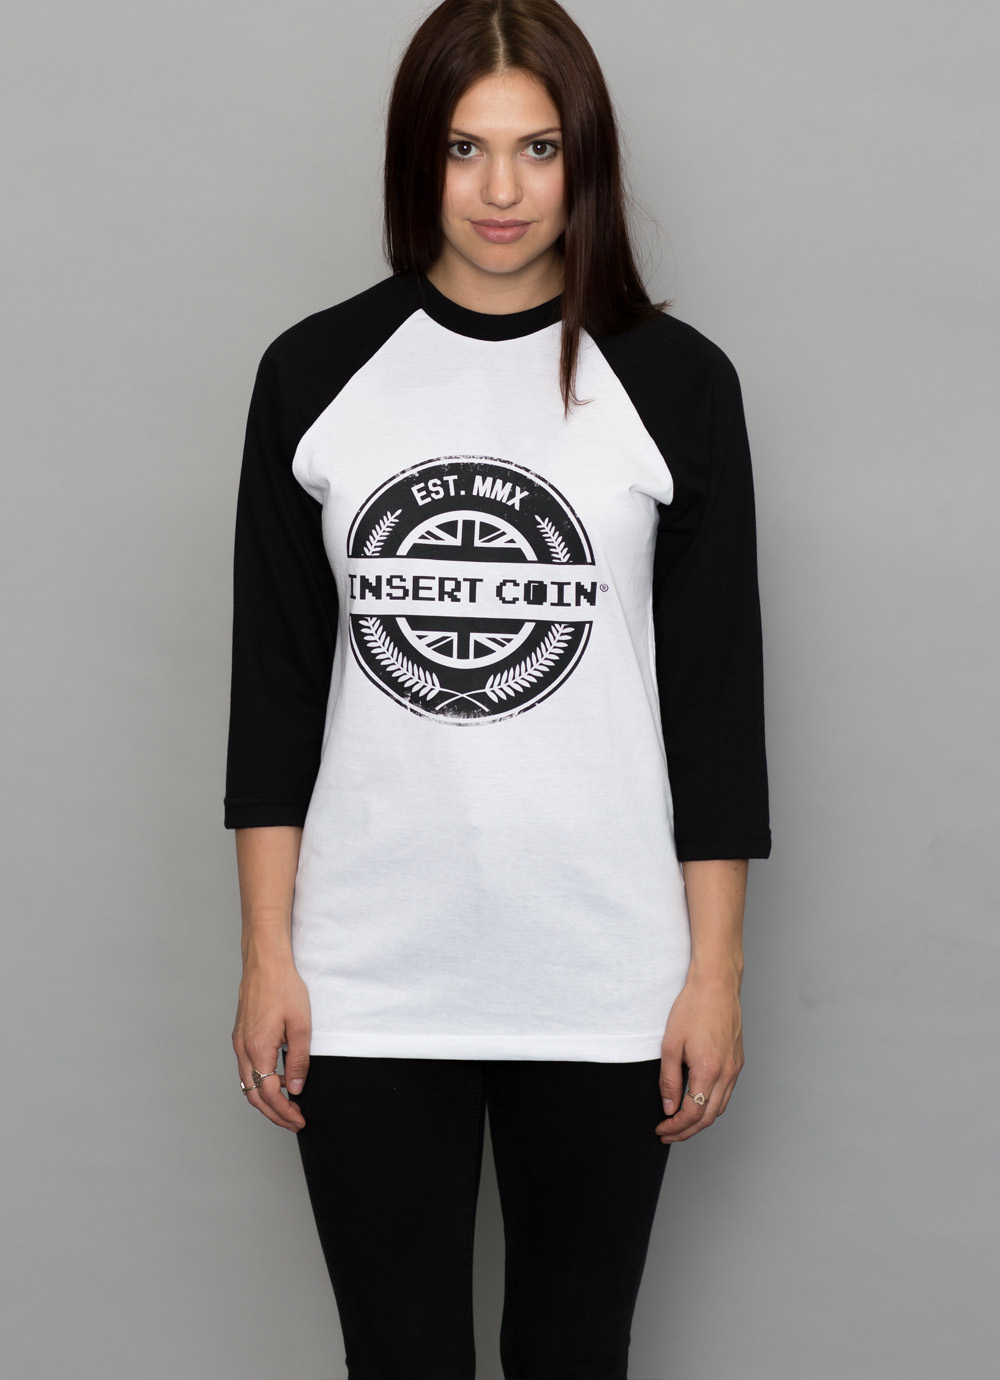 Insert Coin Clothing. 75, likes · talking about this. Stylish, official and limited edition apparel for gamers - inspired by the world of.